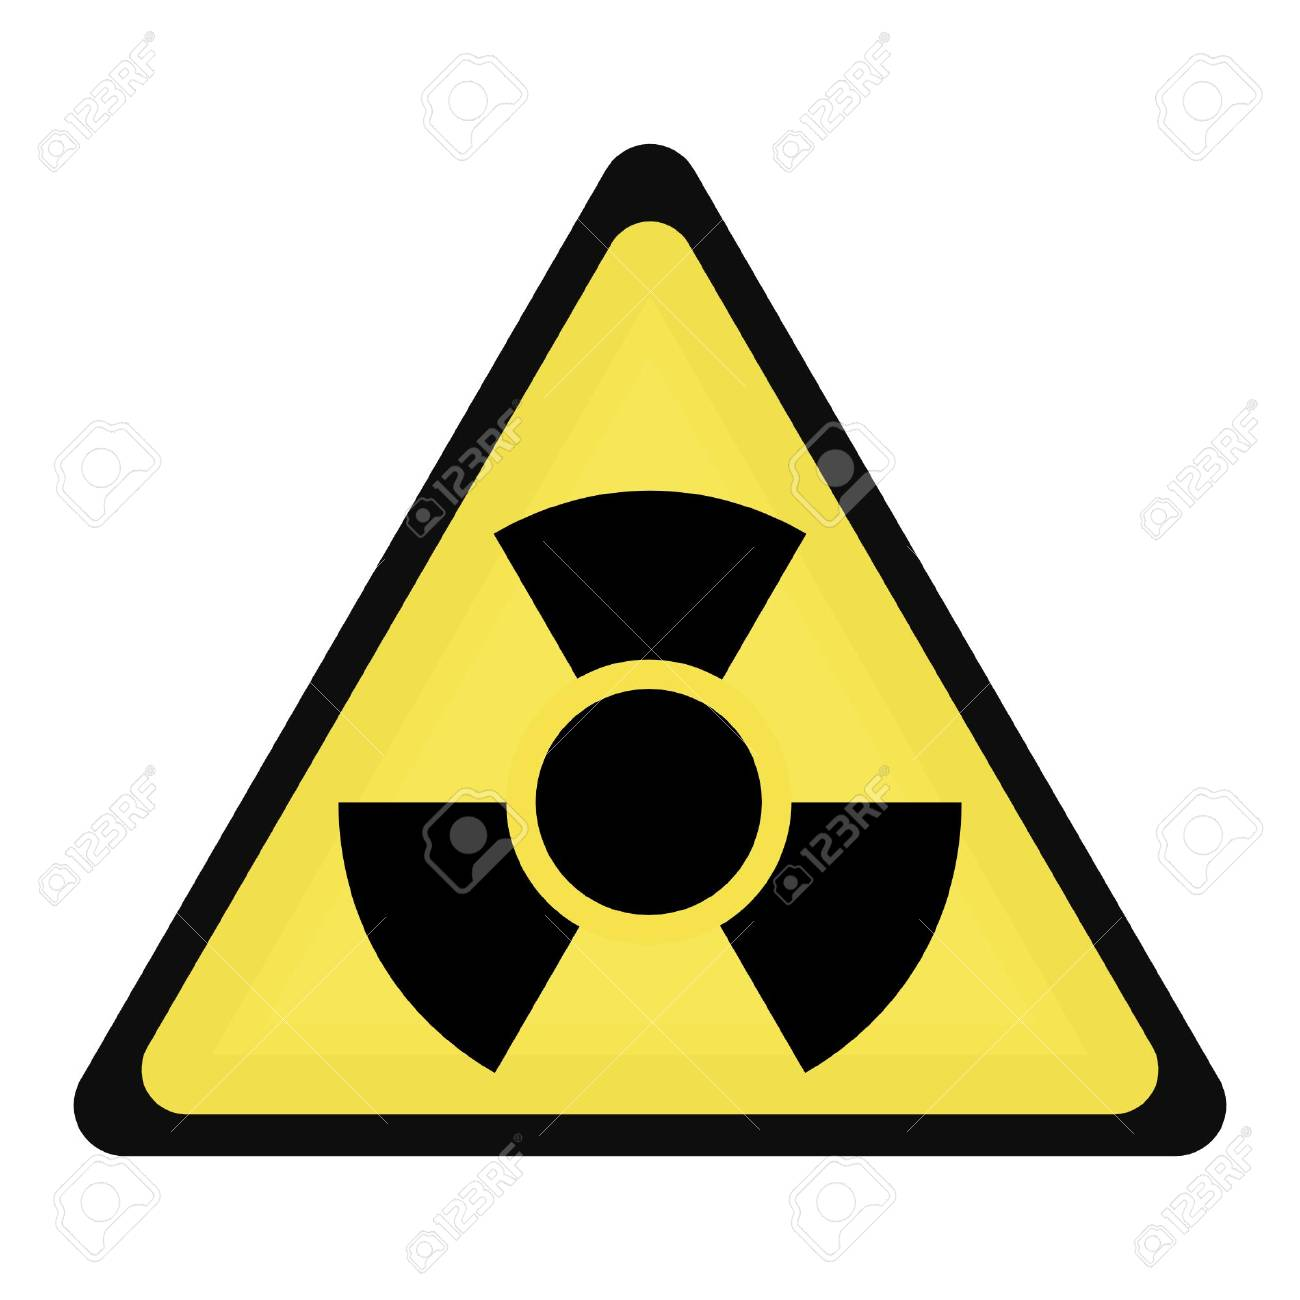 radioactive sign Stock Vector - 3383918